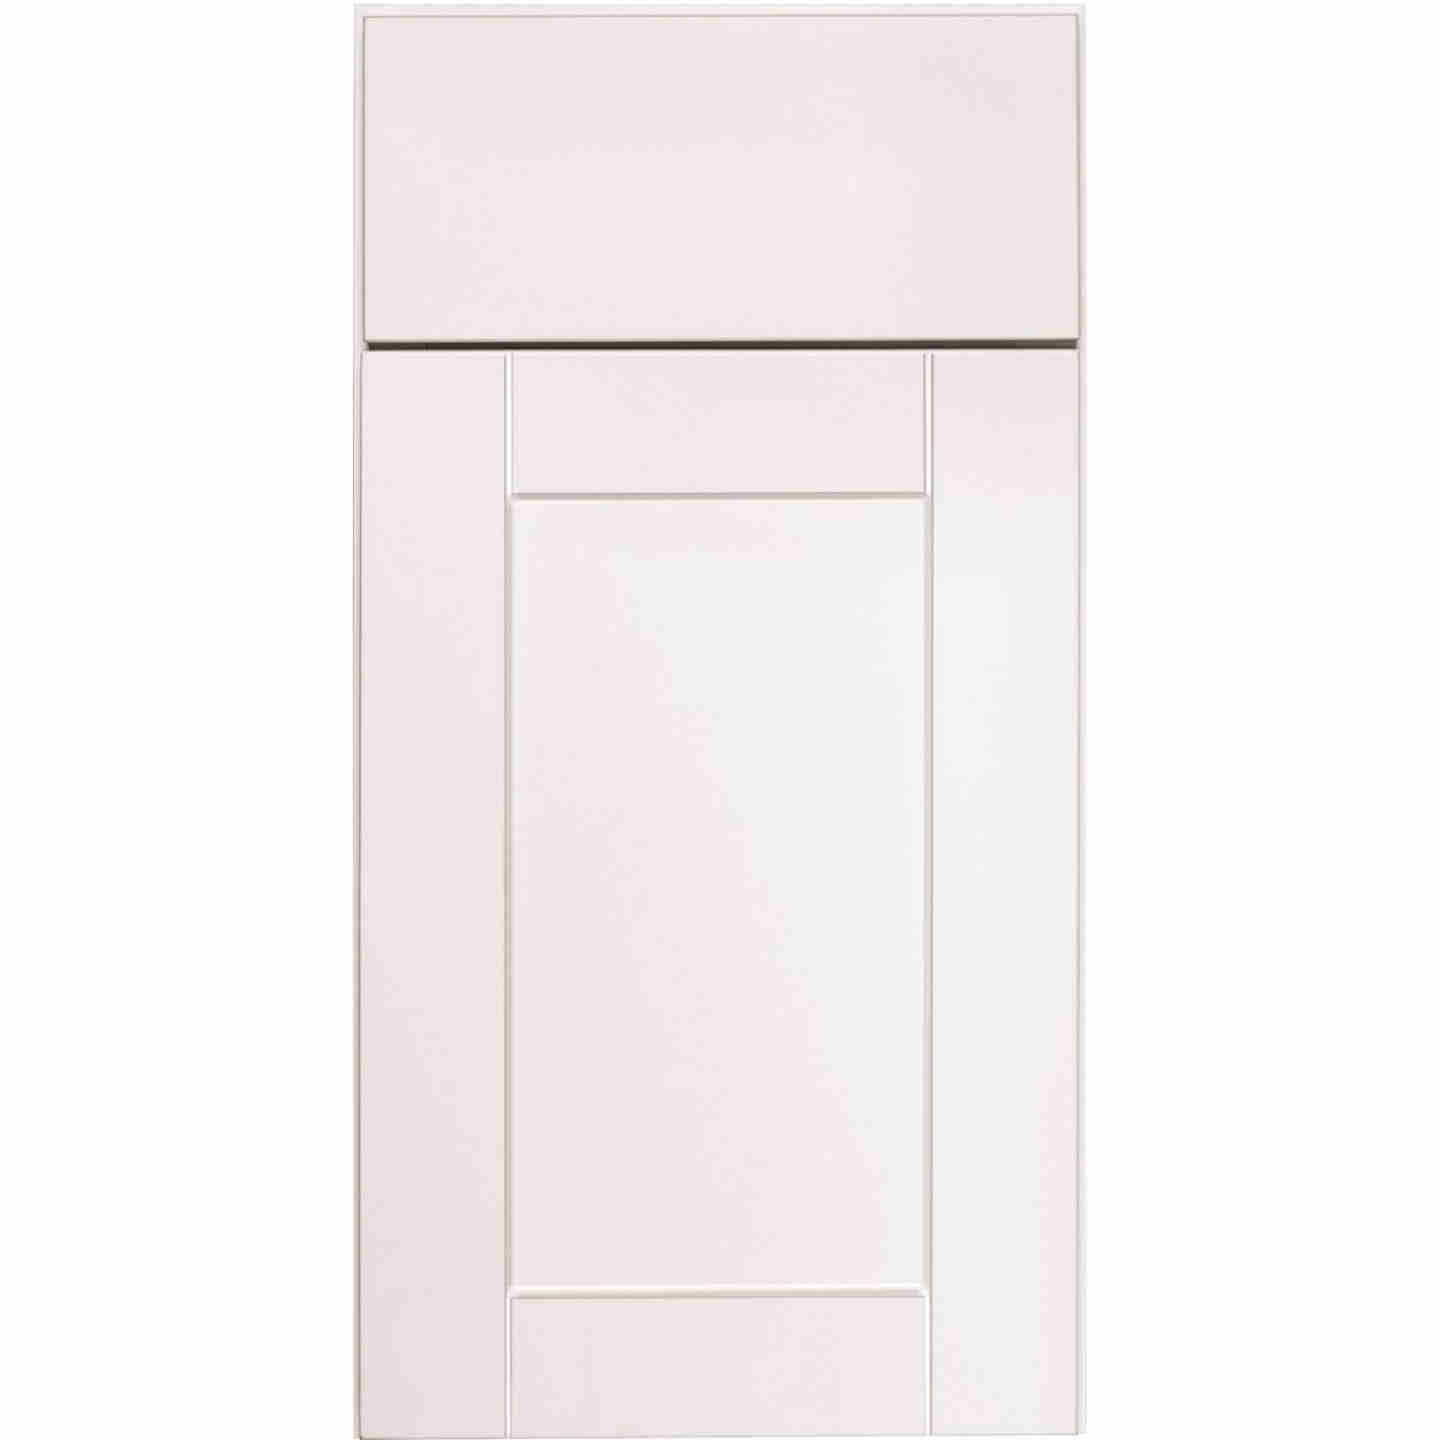 Continental Cabinets Andover Shaker 12 In. W x 34-1/2 In. H x 21 In. D White Drawer Vanity Base Image 3